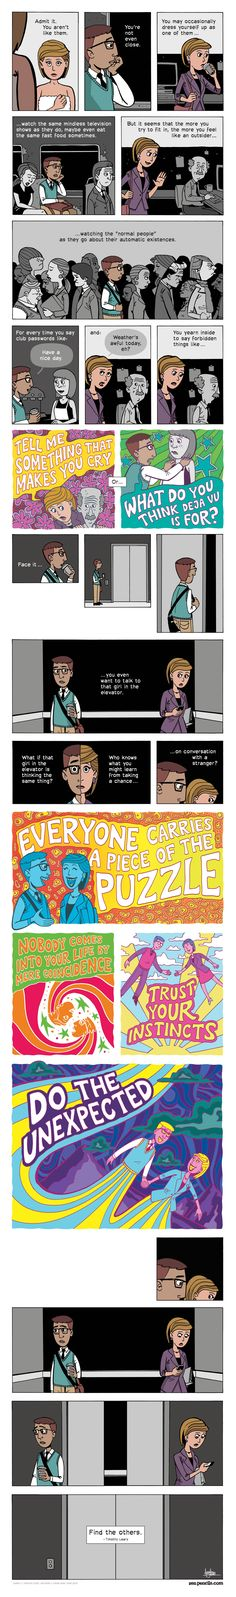 ZEN PENCILS » 102. TIMOTHY LEARY: You aren't like them